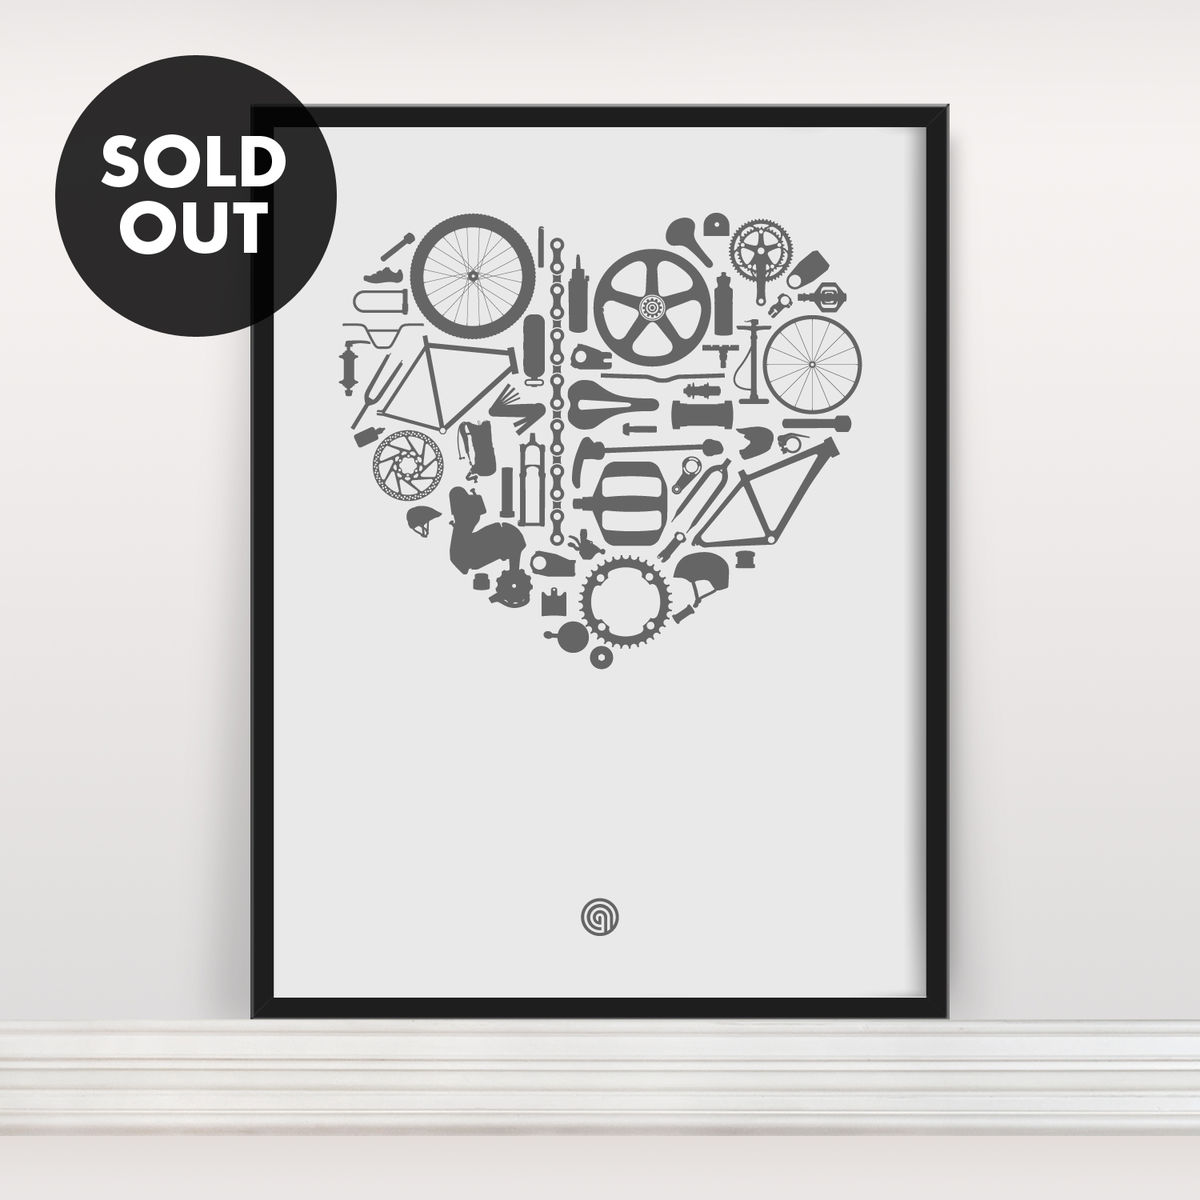 Bike Love - Screen Print Edition 3 - product image